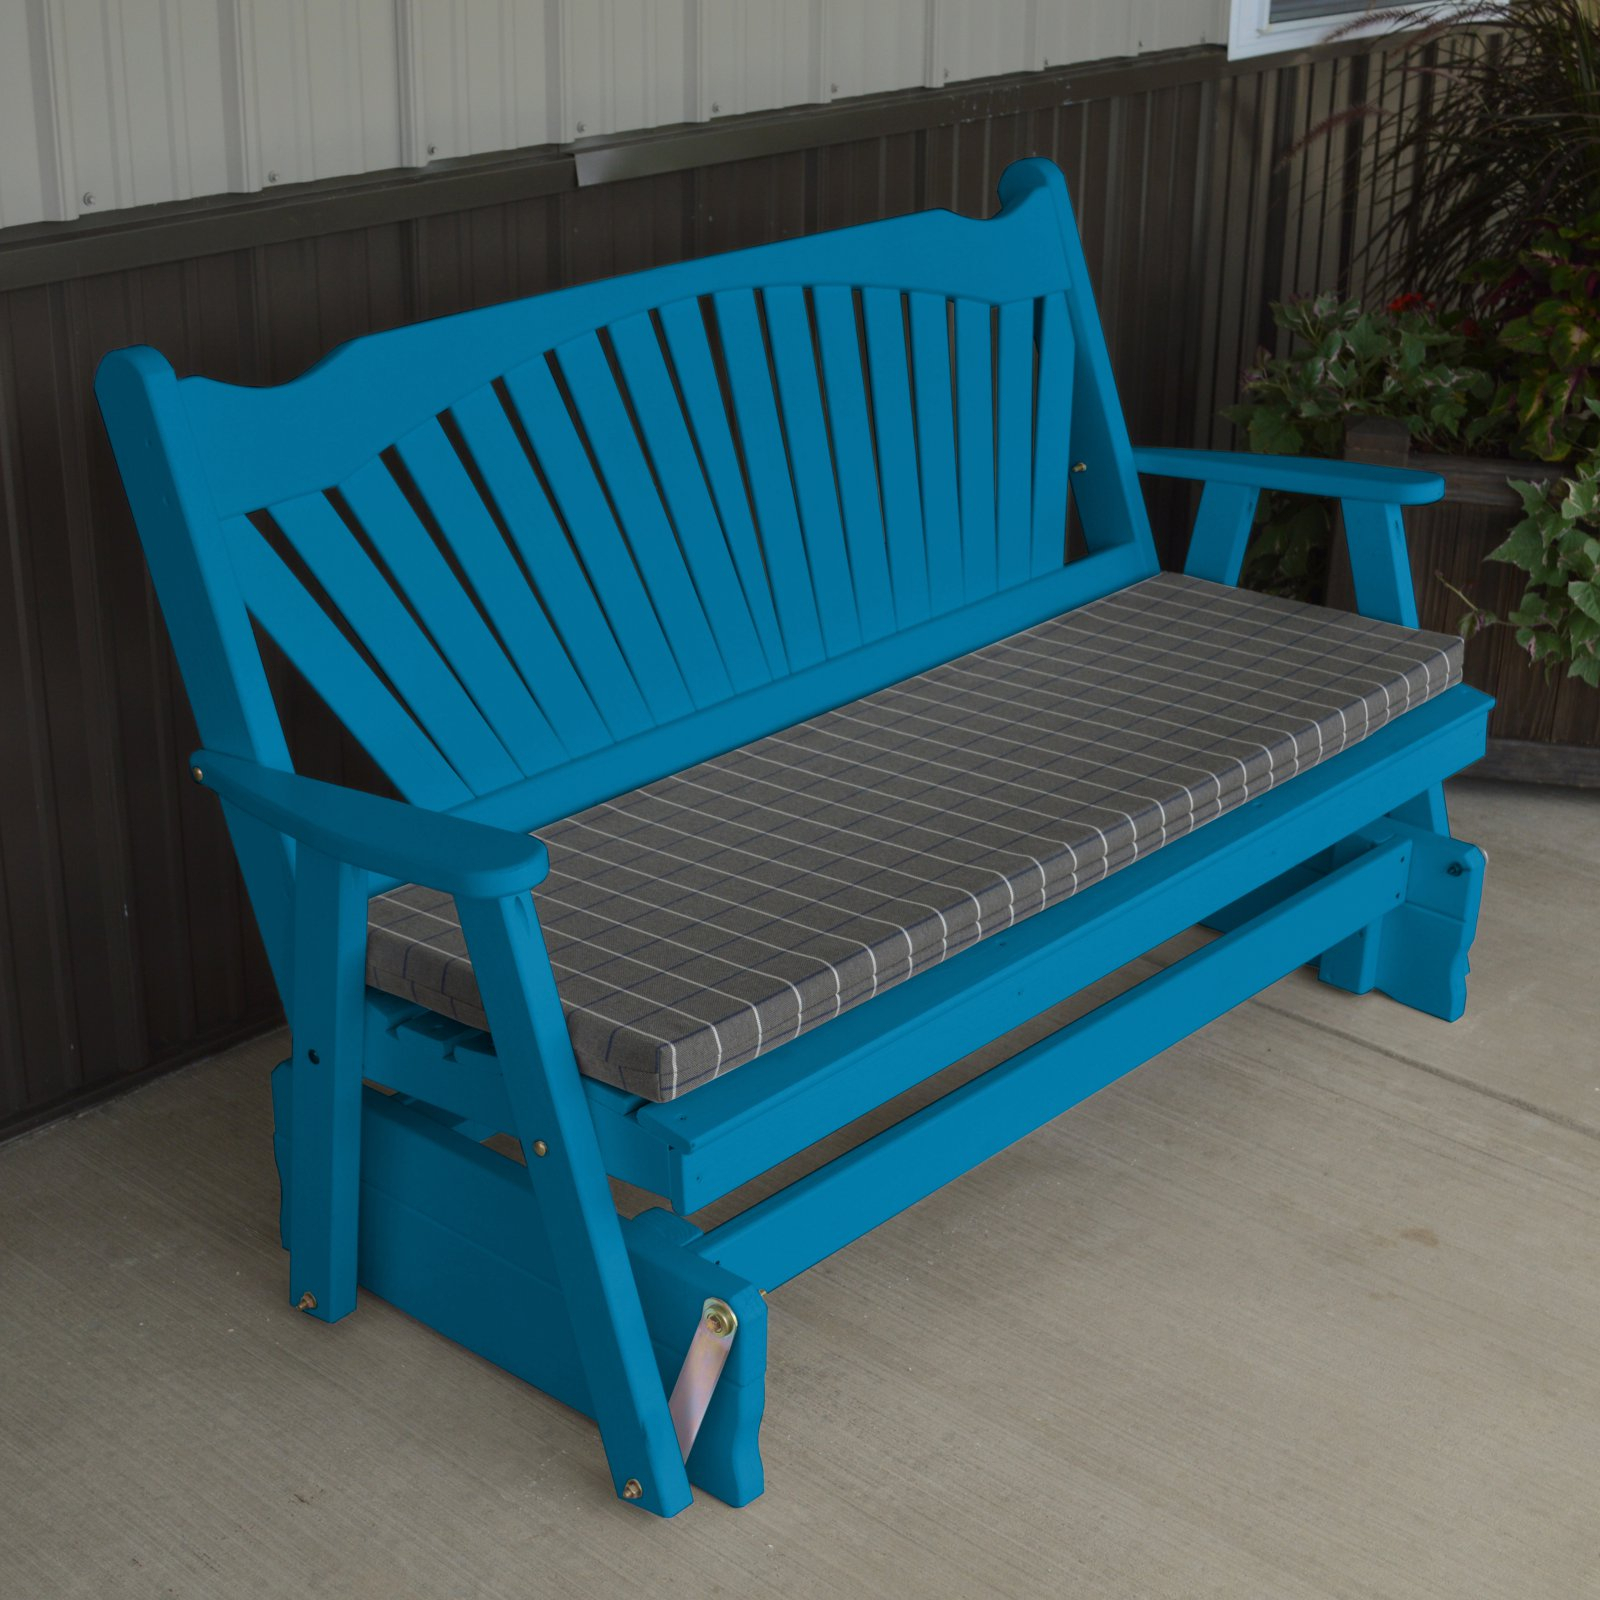 A & L Furniture Yellow Pine Fanback Outdoor Bench Glider With Regard To Fanback Glider Benches (View 4 of 25)